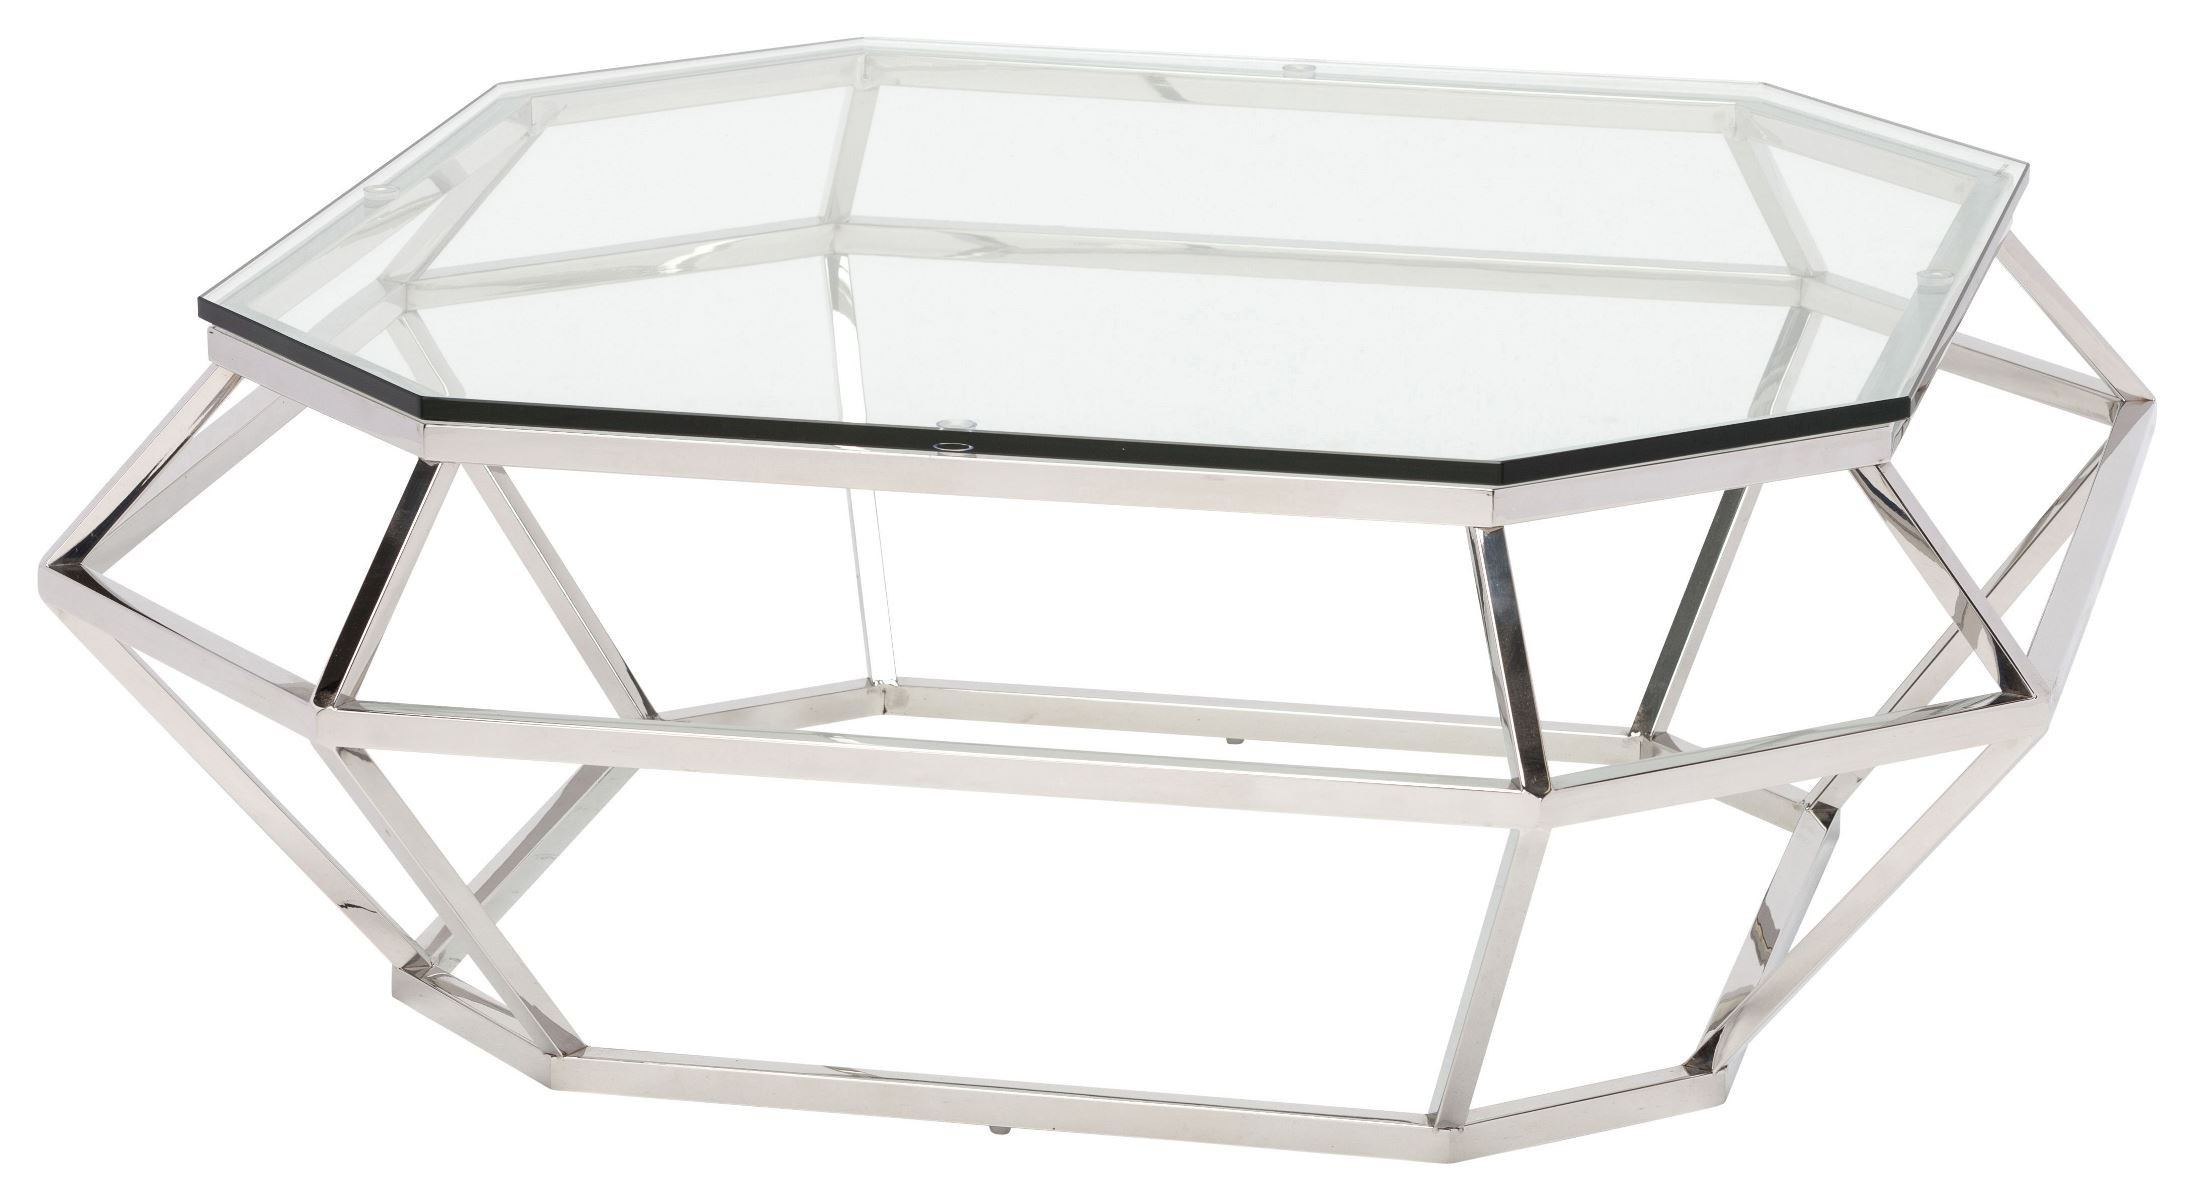 Diamond Clear Glass And Silver Metal Square Coffee Table From Nuevo Coleman Furniture